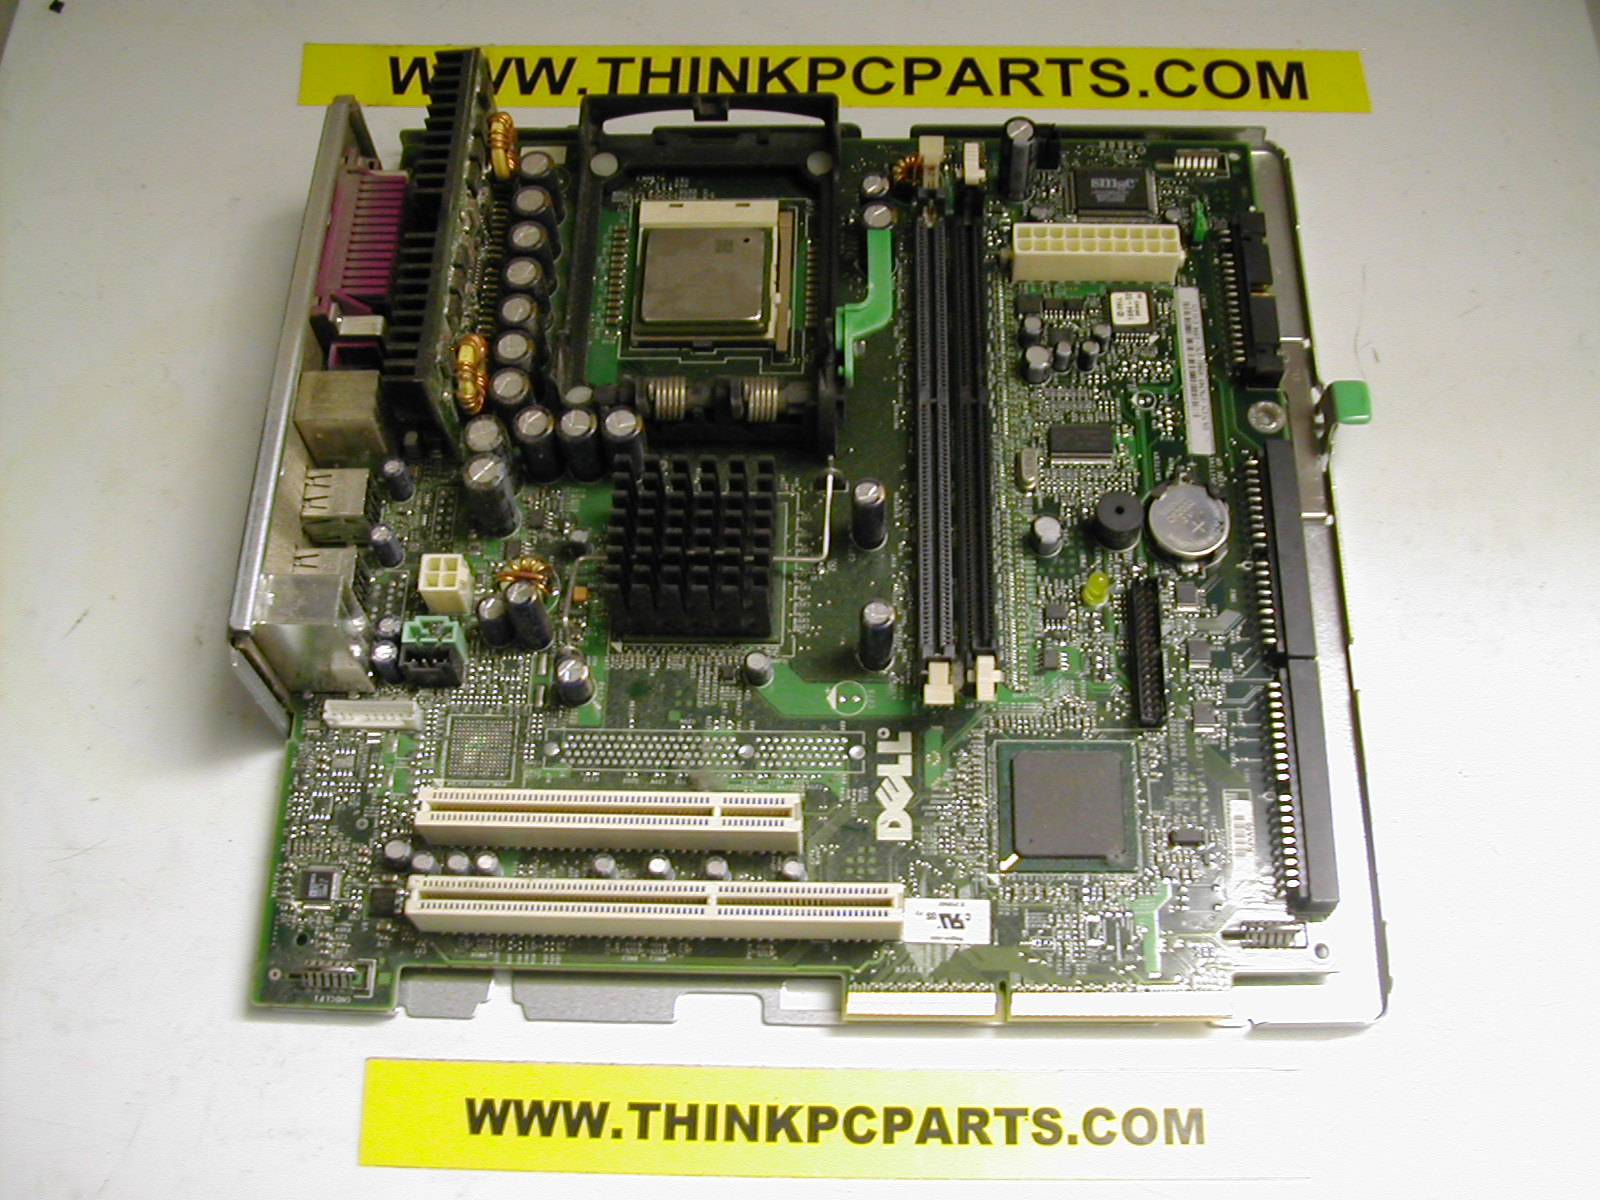 Dell Dimension 4500s Motherboard With Intel Celron 1 7ghz